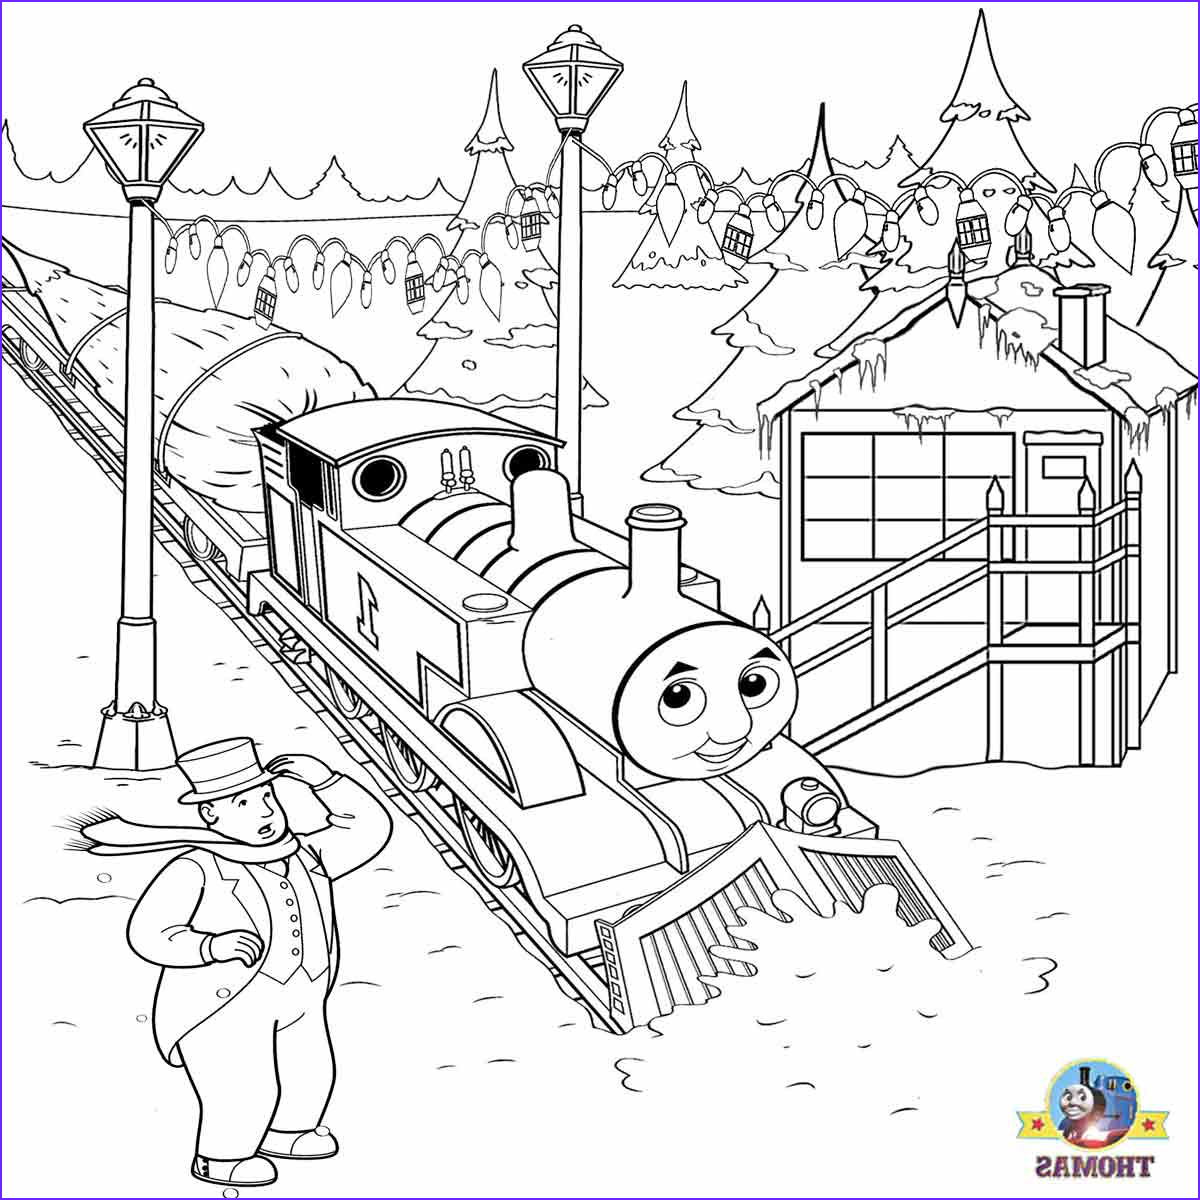 Thomas the Train Coloring Awesome Photos Train Thomas the Tank Engine Friends Free Online Games and